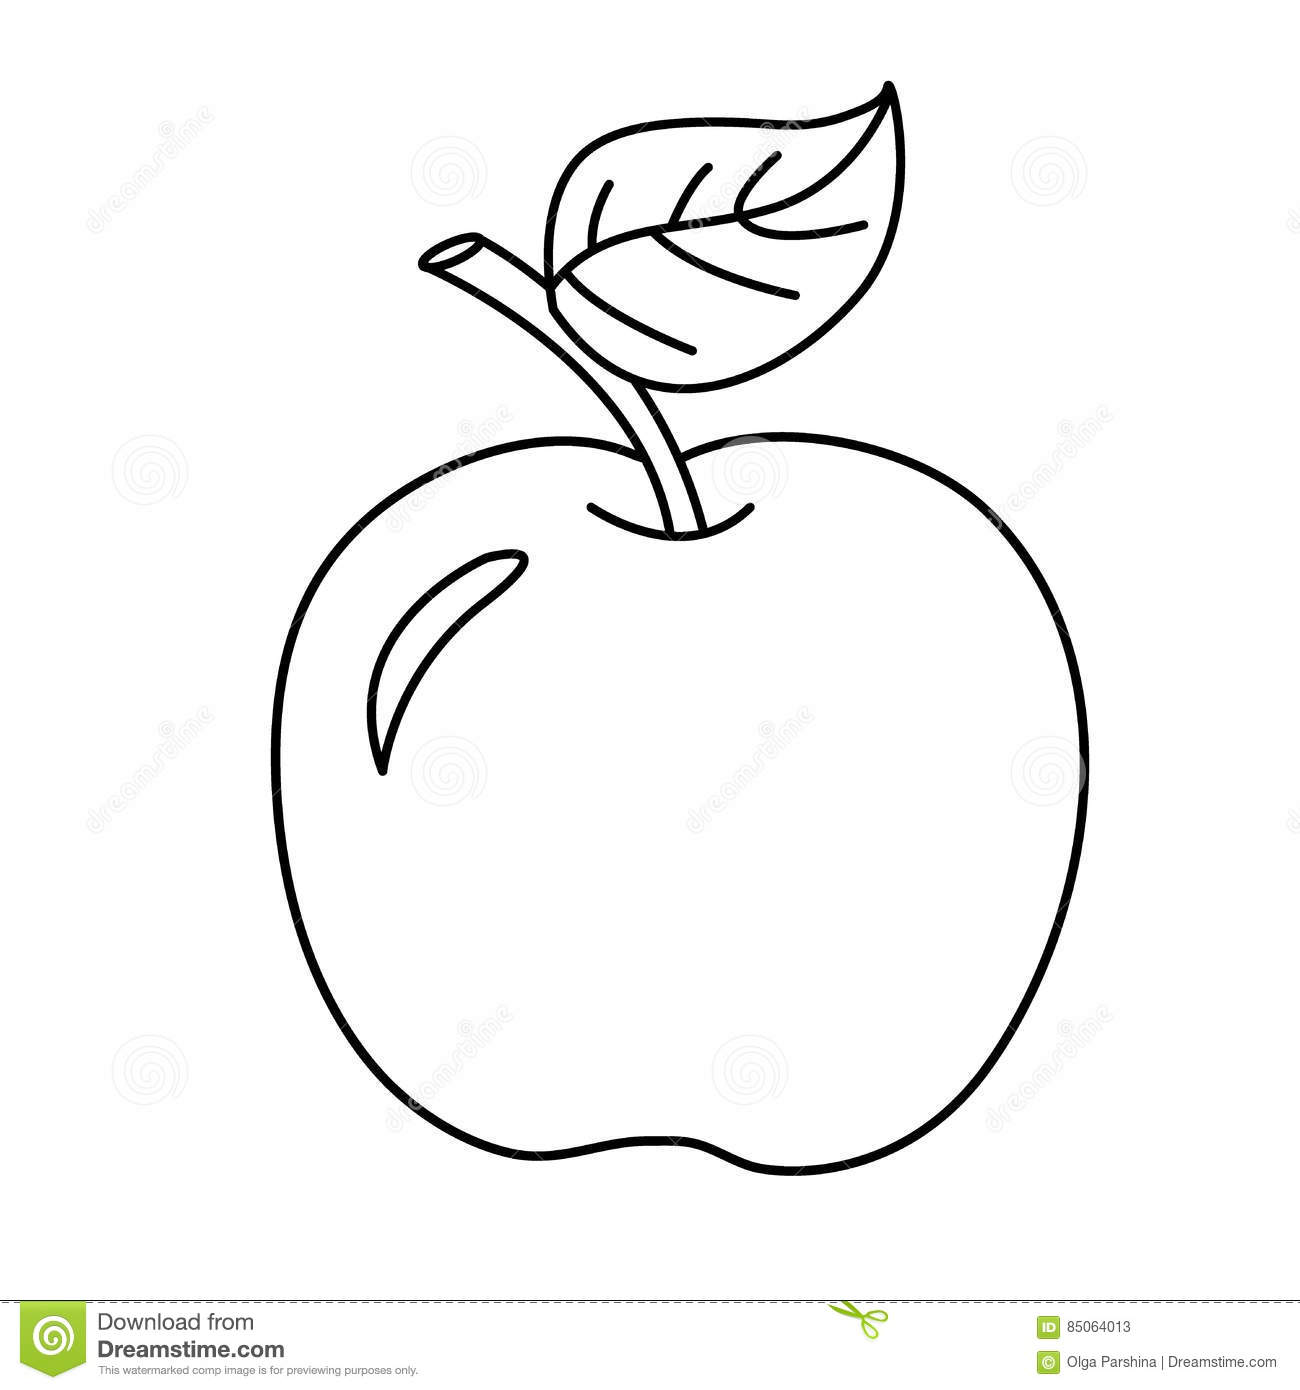 Coloring Book Apple Coloring Book Apple Coloring Home